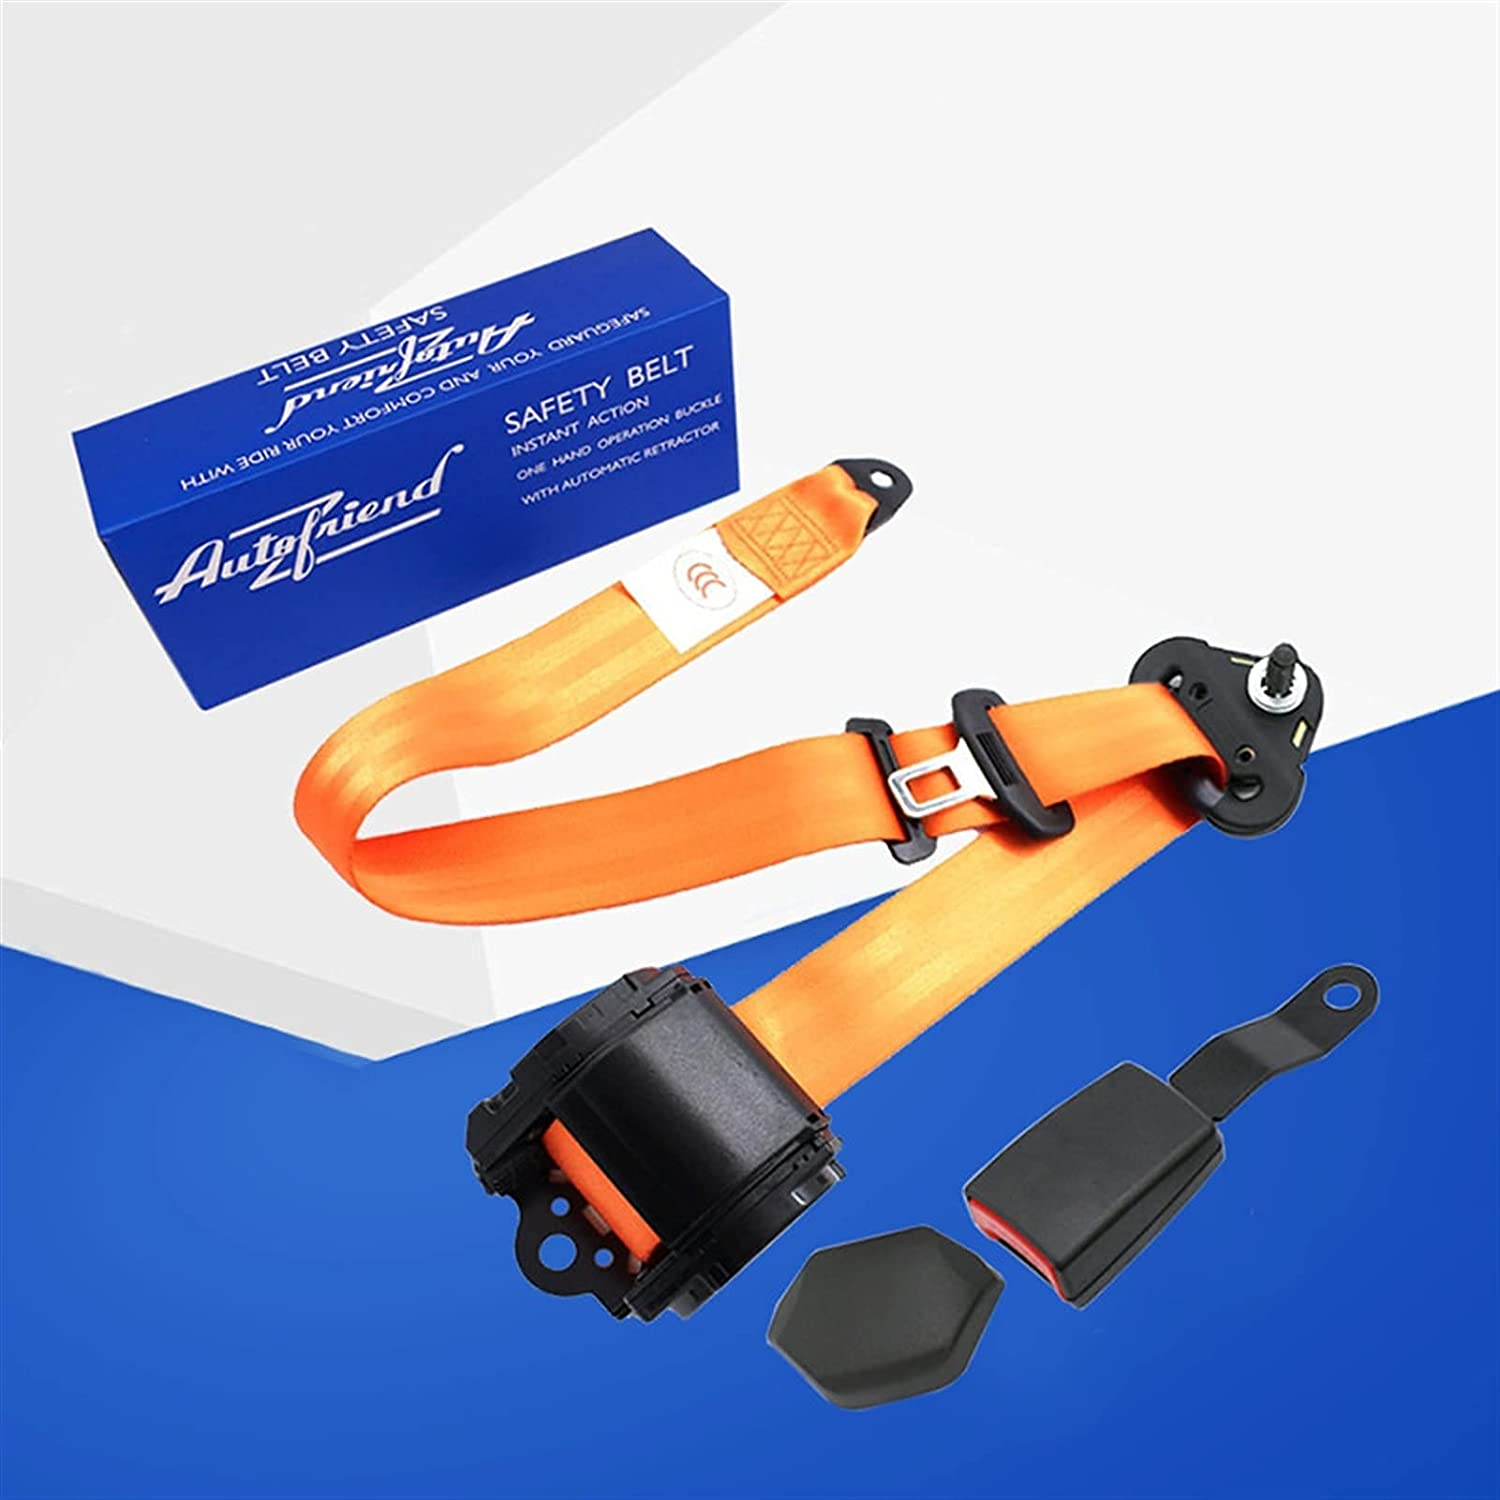 PARTAS Adapter Car Auto 3 Point Diag Seat Safety Lap Belts Industry No. 1 Quality inspection